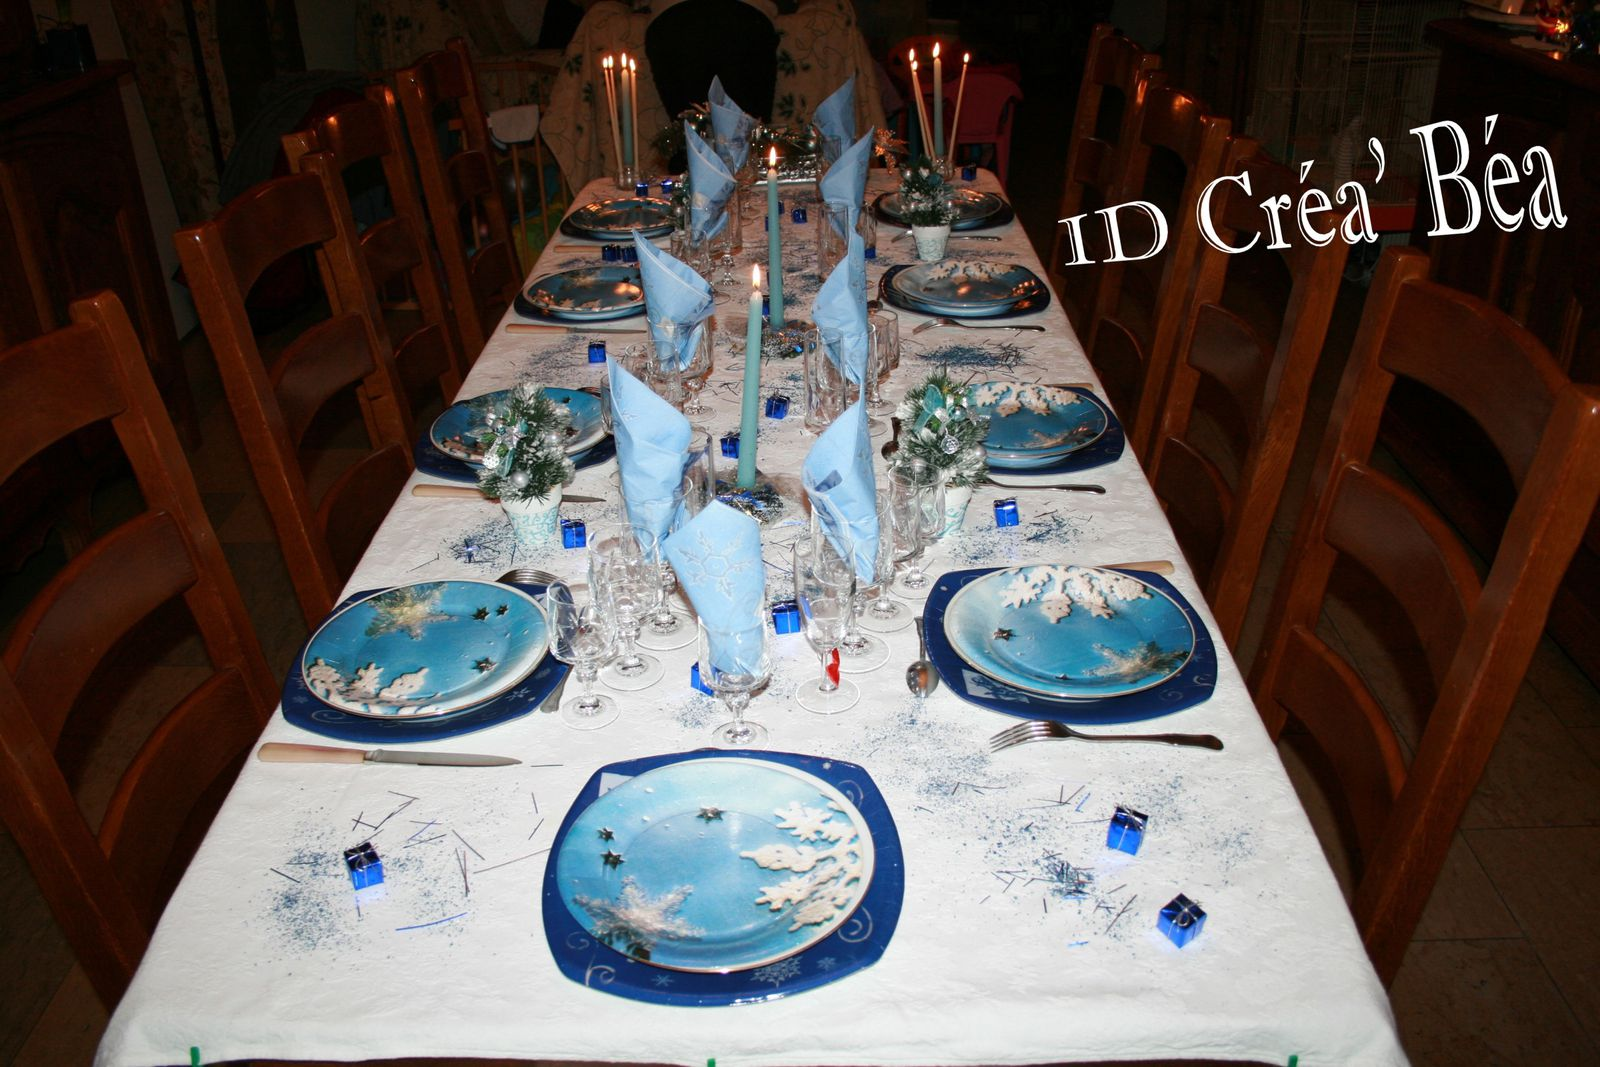 Album table no l givr e bleue id cr a 39 b a des for Deco de noel bleu et argent